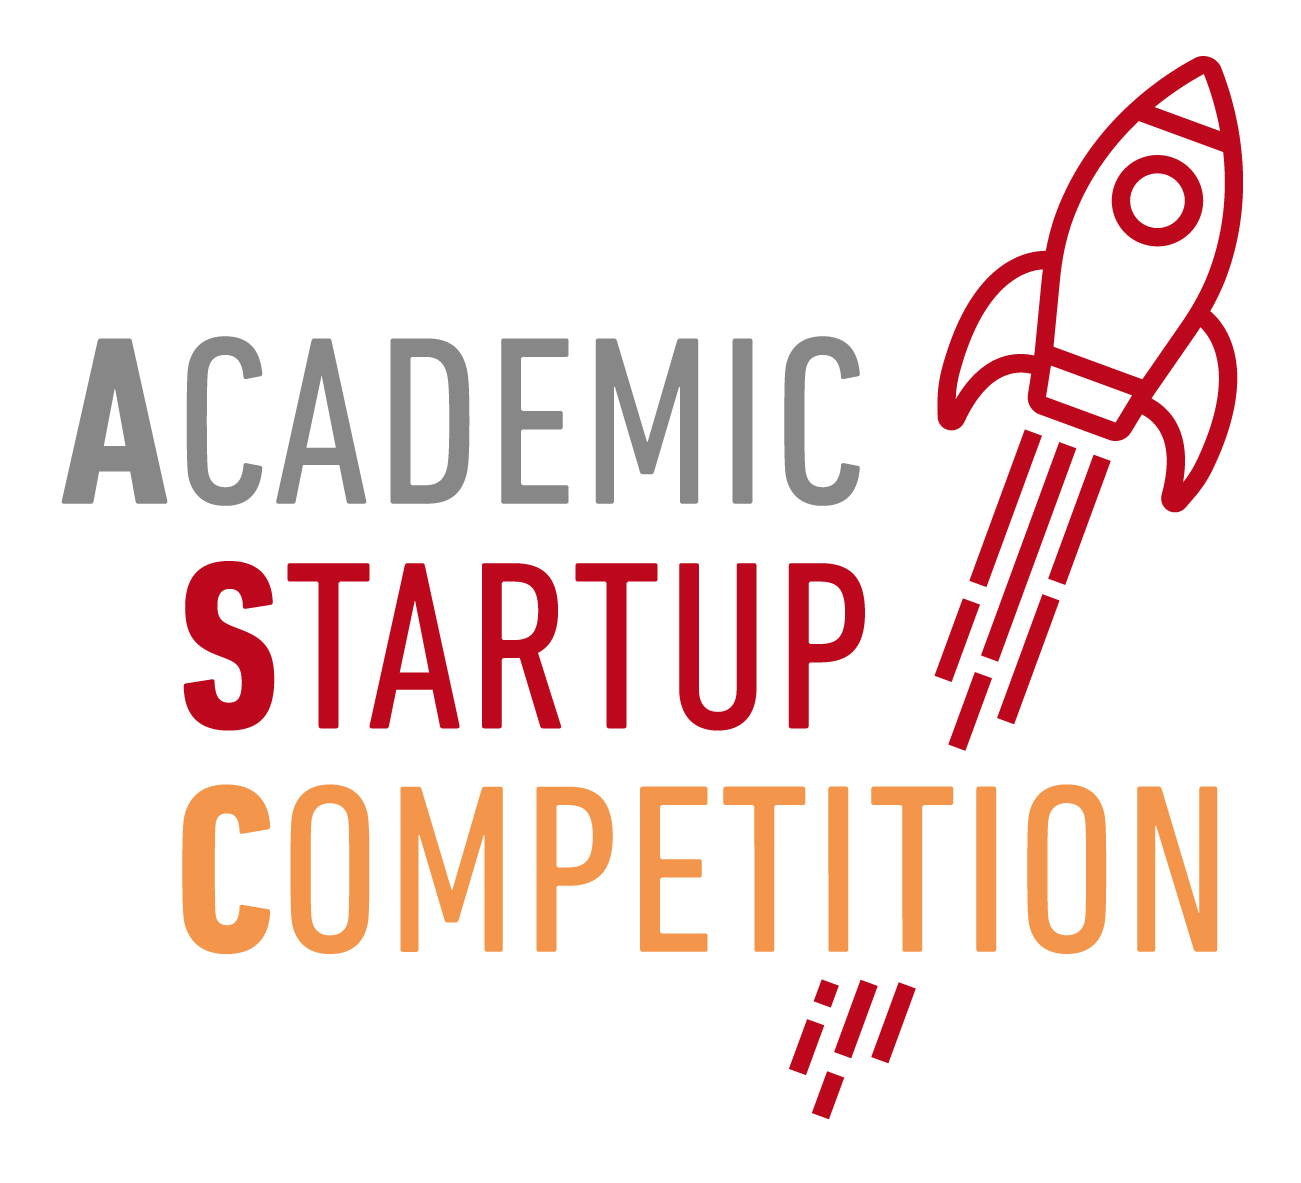 VSNU, Techleap.nl and AcTI, the Netherlands Academy of Engineering organise the second edition of the Academic Startup Competition